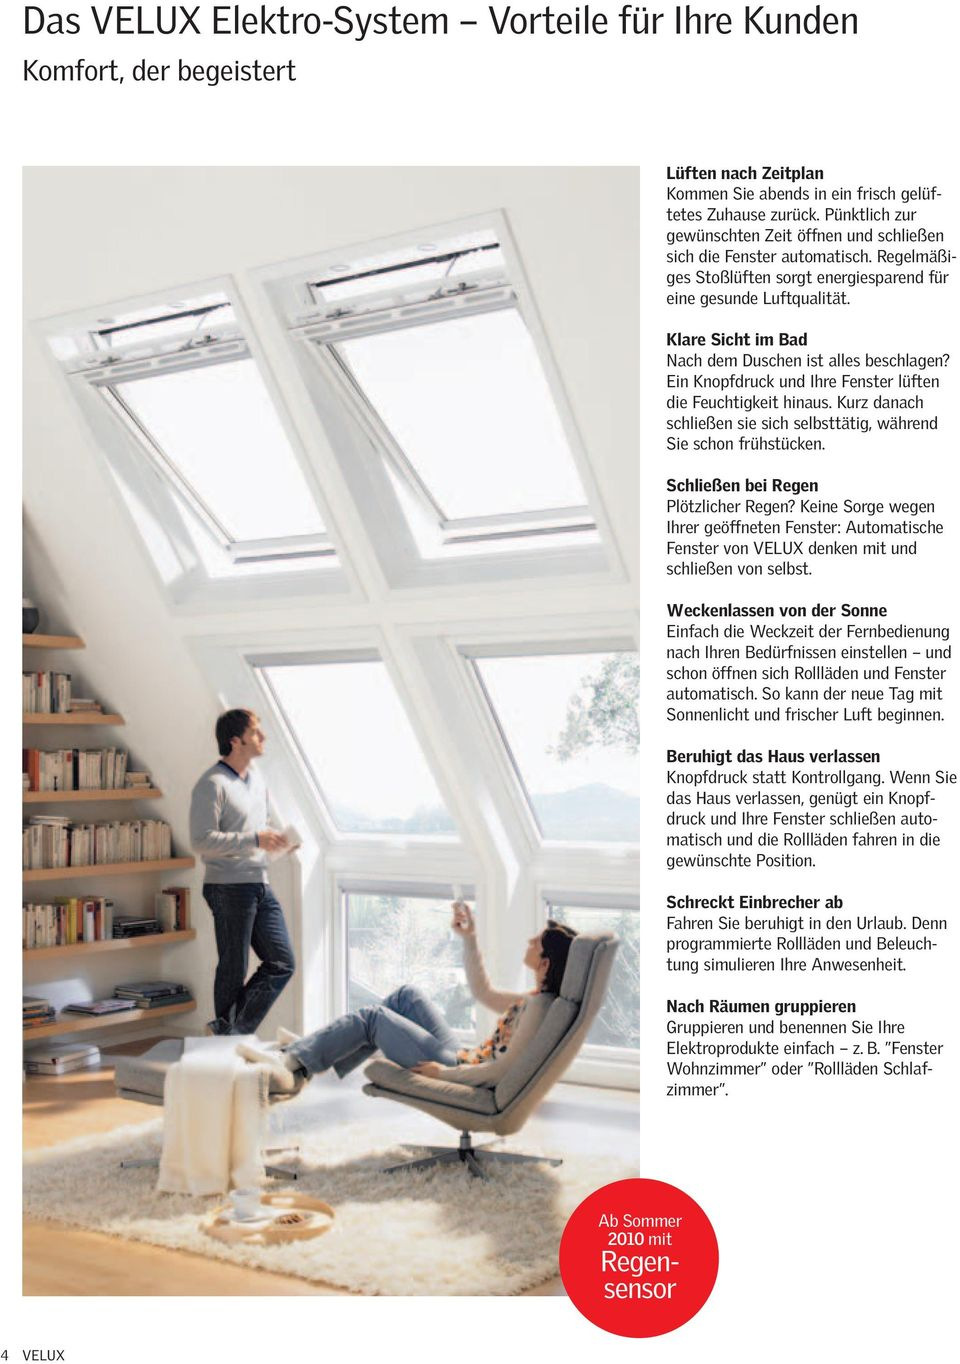 velux elektro system die velux profi brosch re stand pdf. Black Bedroom Furniture Sets. Home Design Ideas